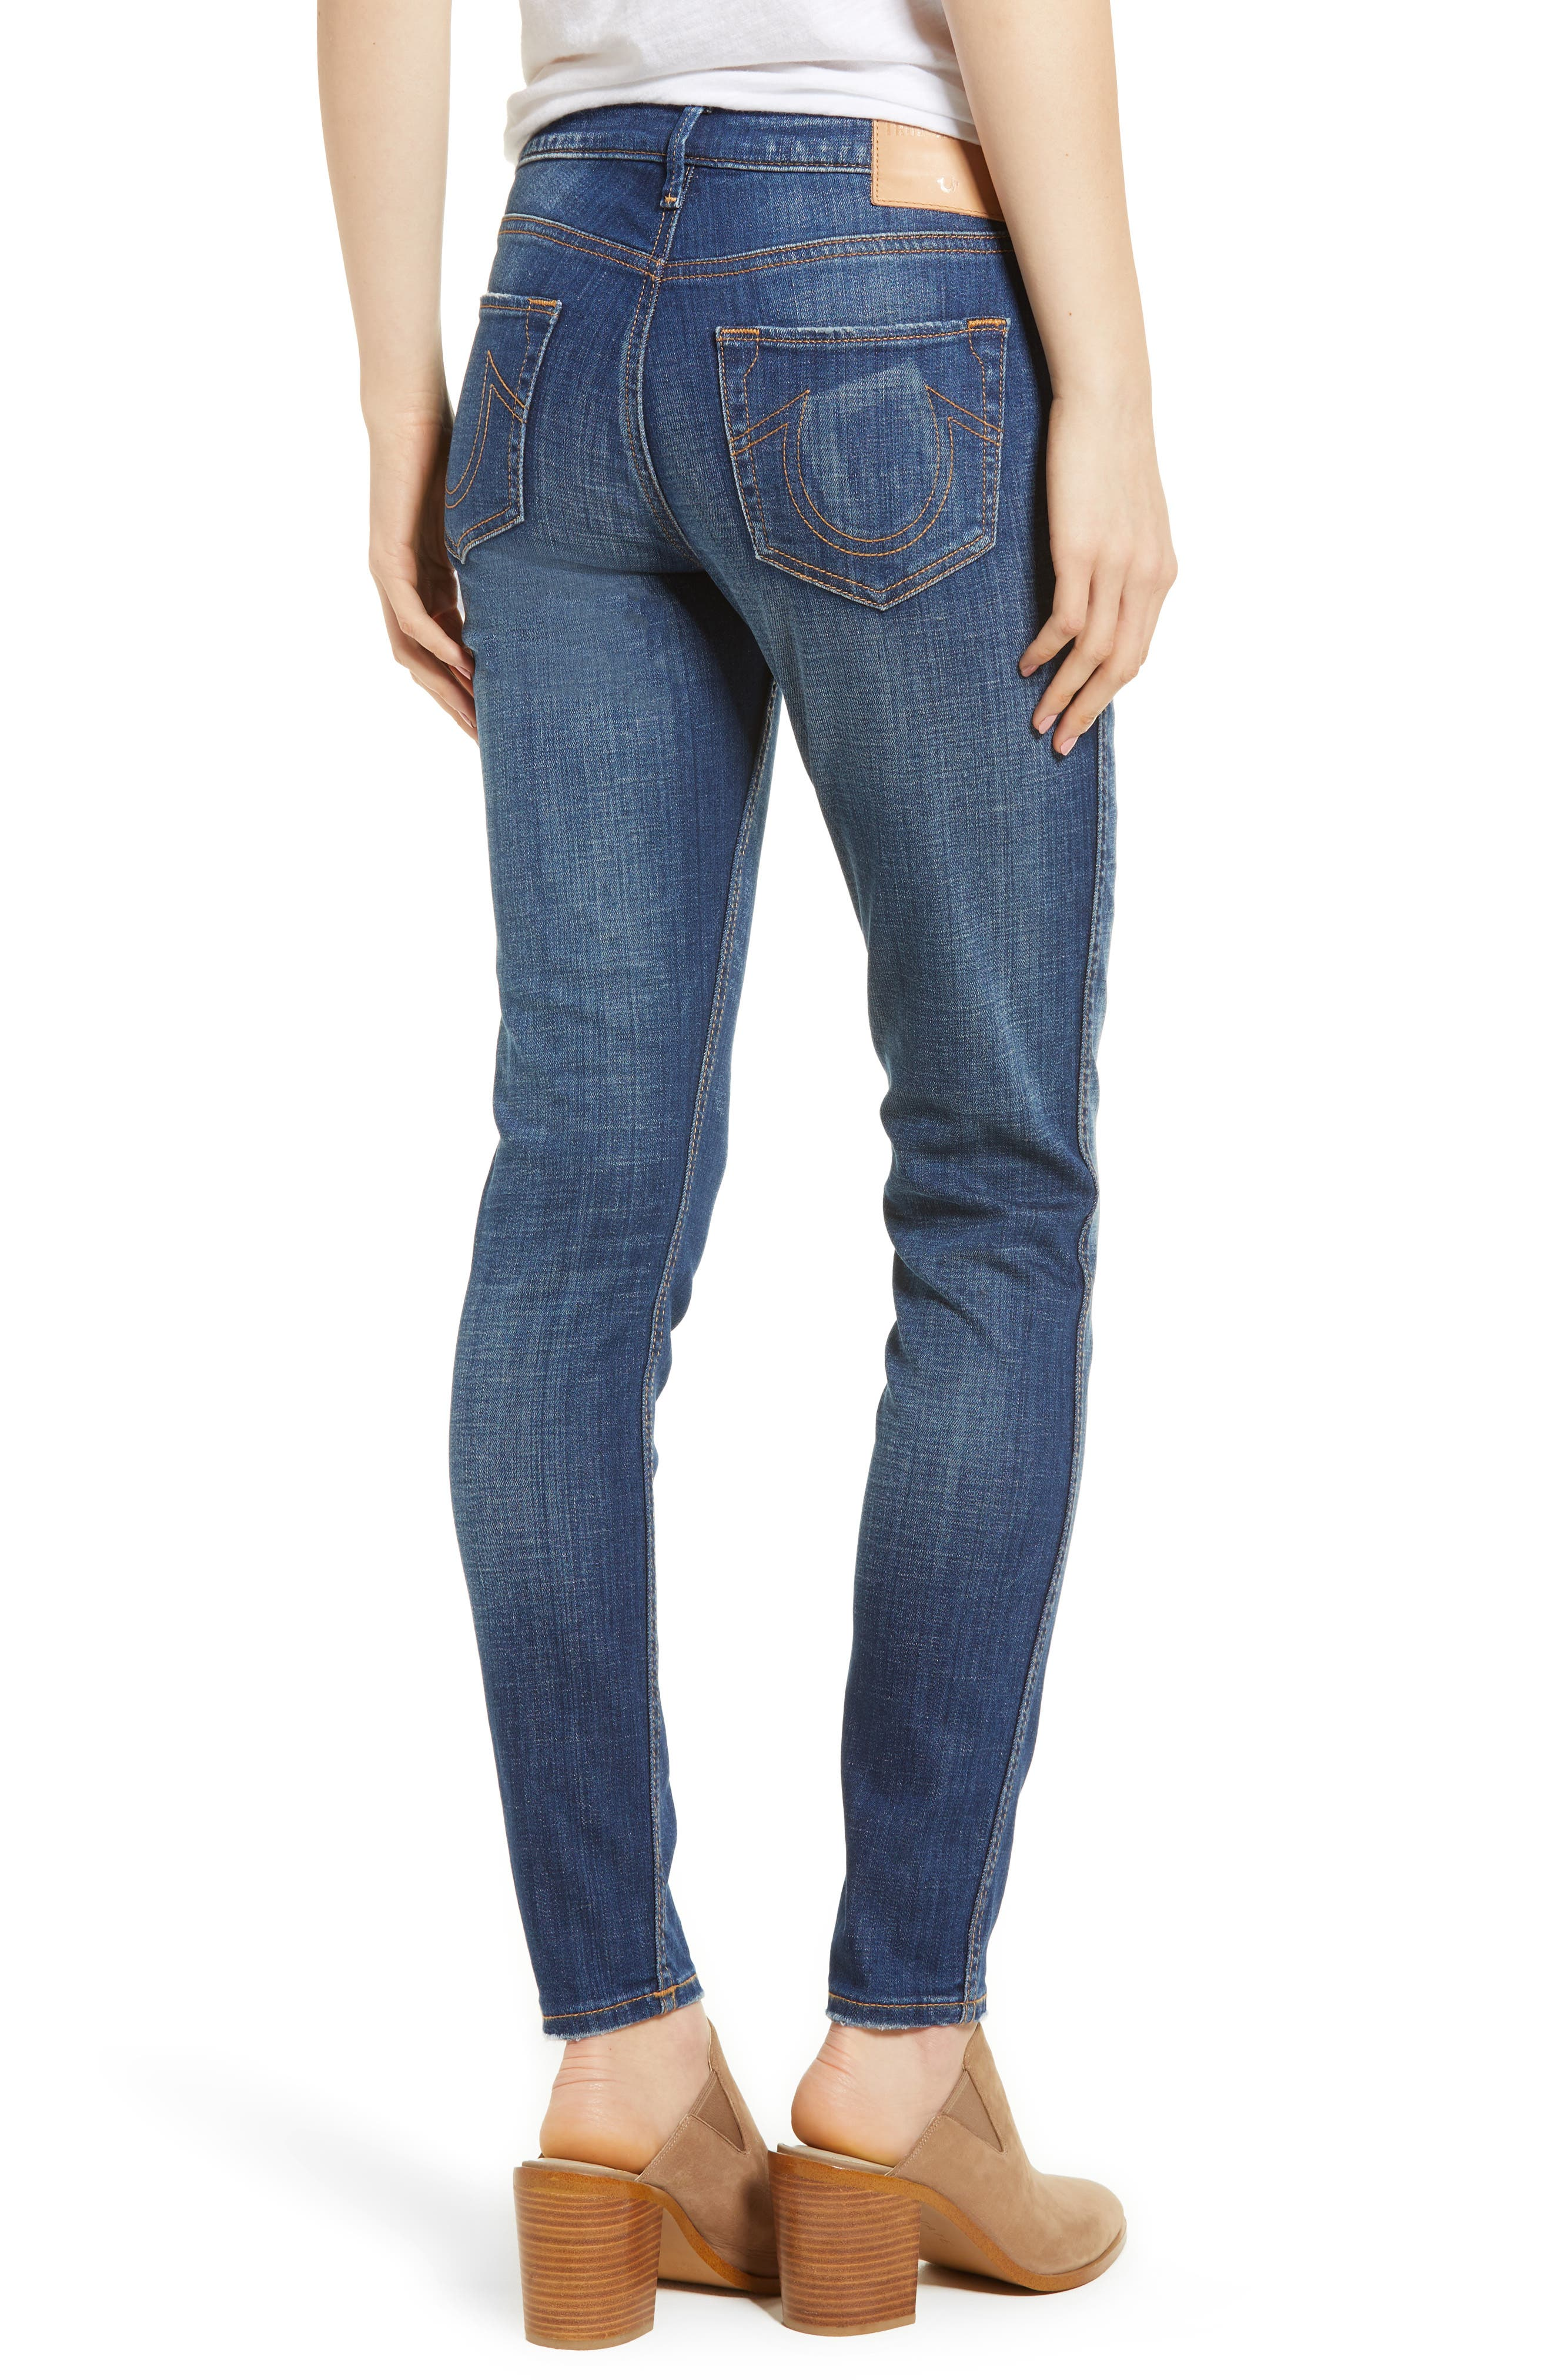 Halle Mid Rise Super Skinny Jeans,                             Alternate thumbnail 2, color,                             401